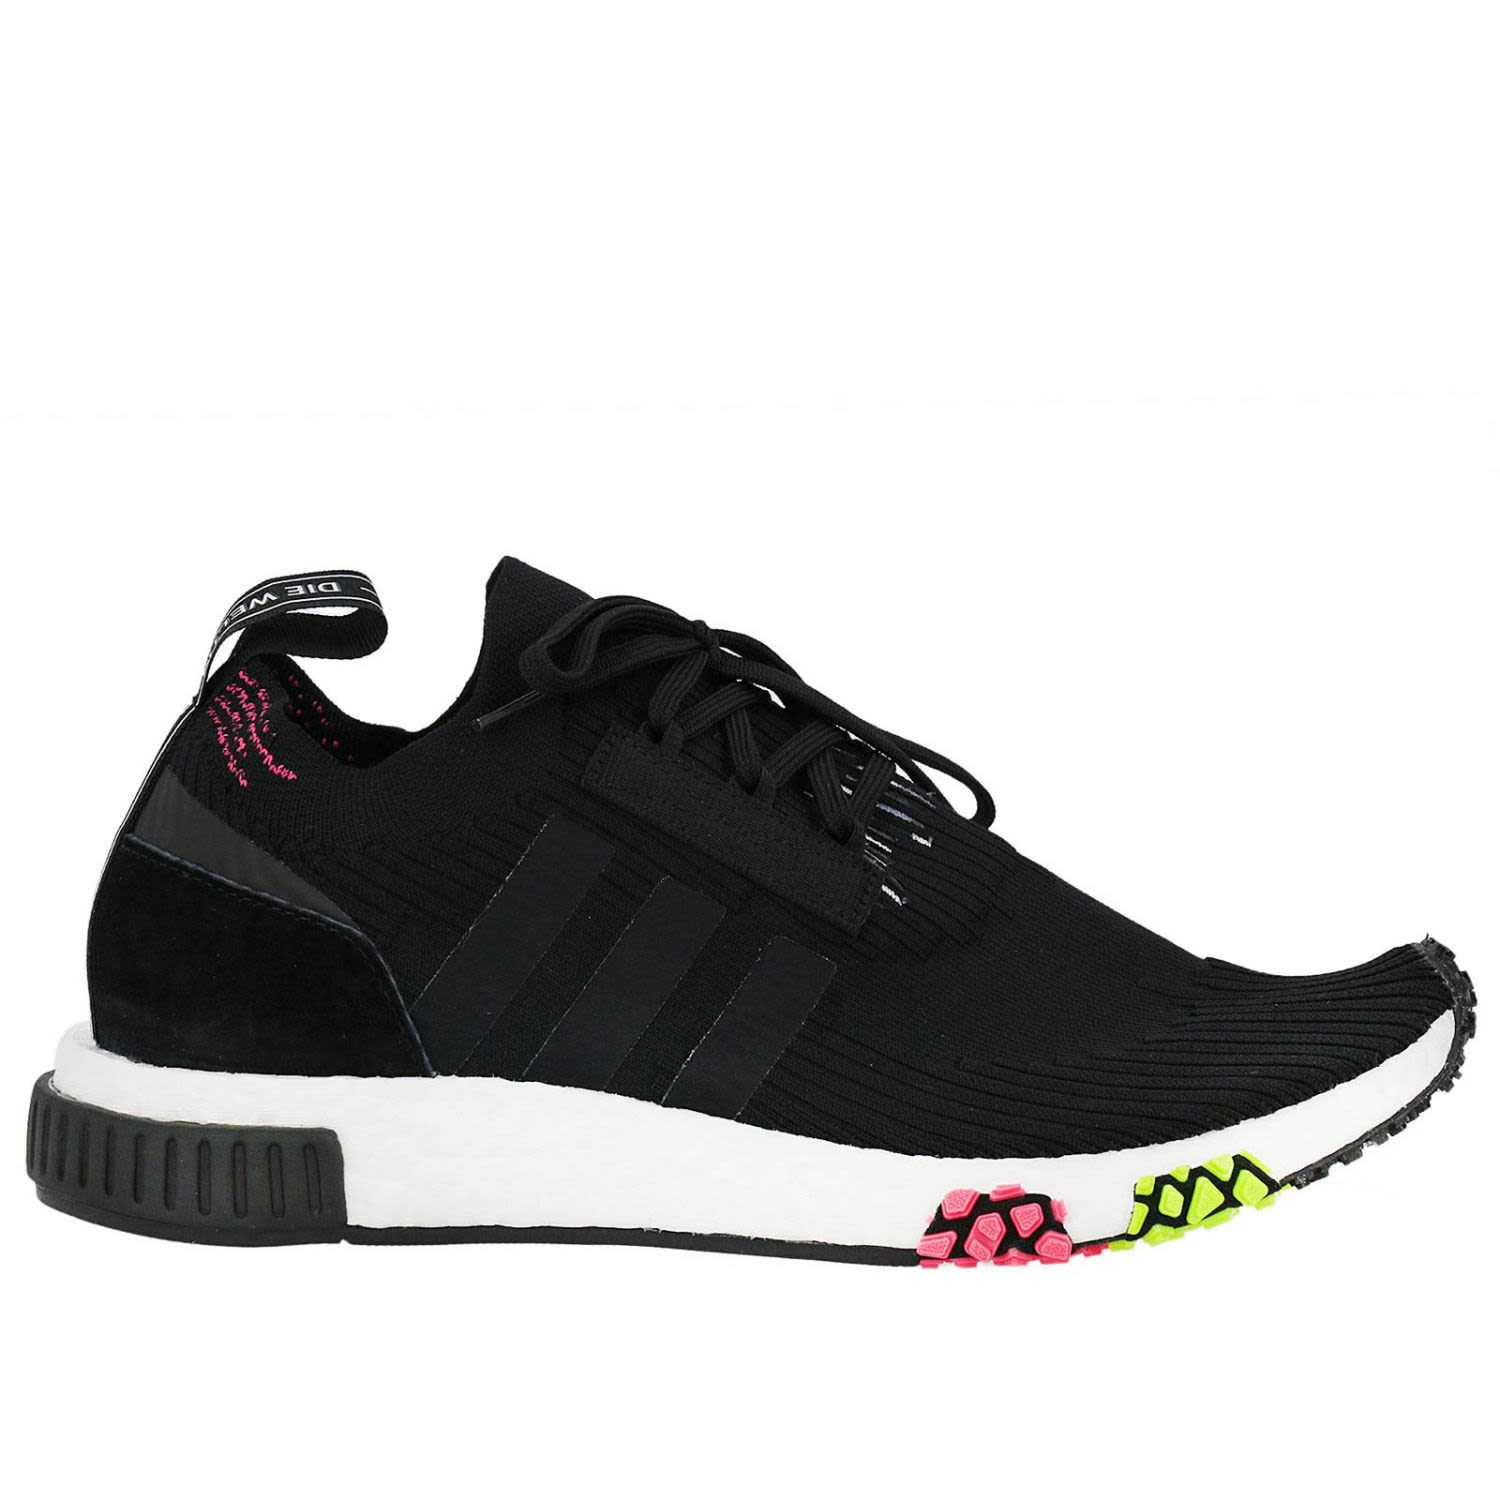 Sneakers Adidas Originals Nmd-racer Primeknit Men's Sneakers With Contrasting Shaped Plus 10353179